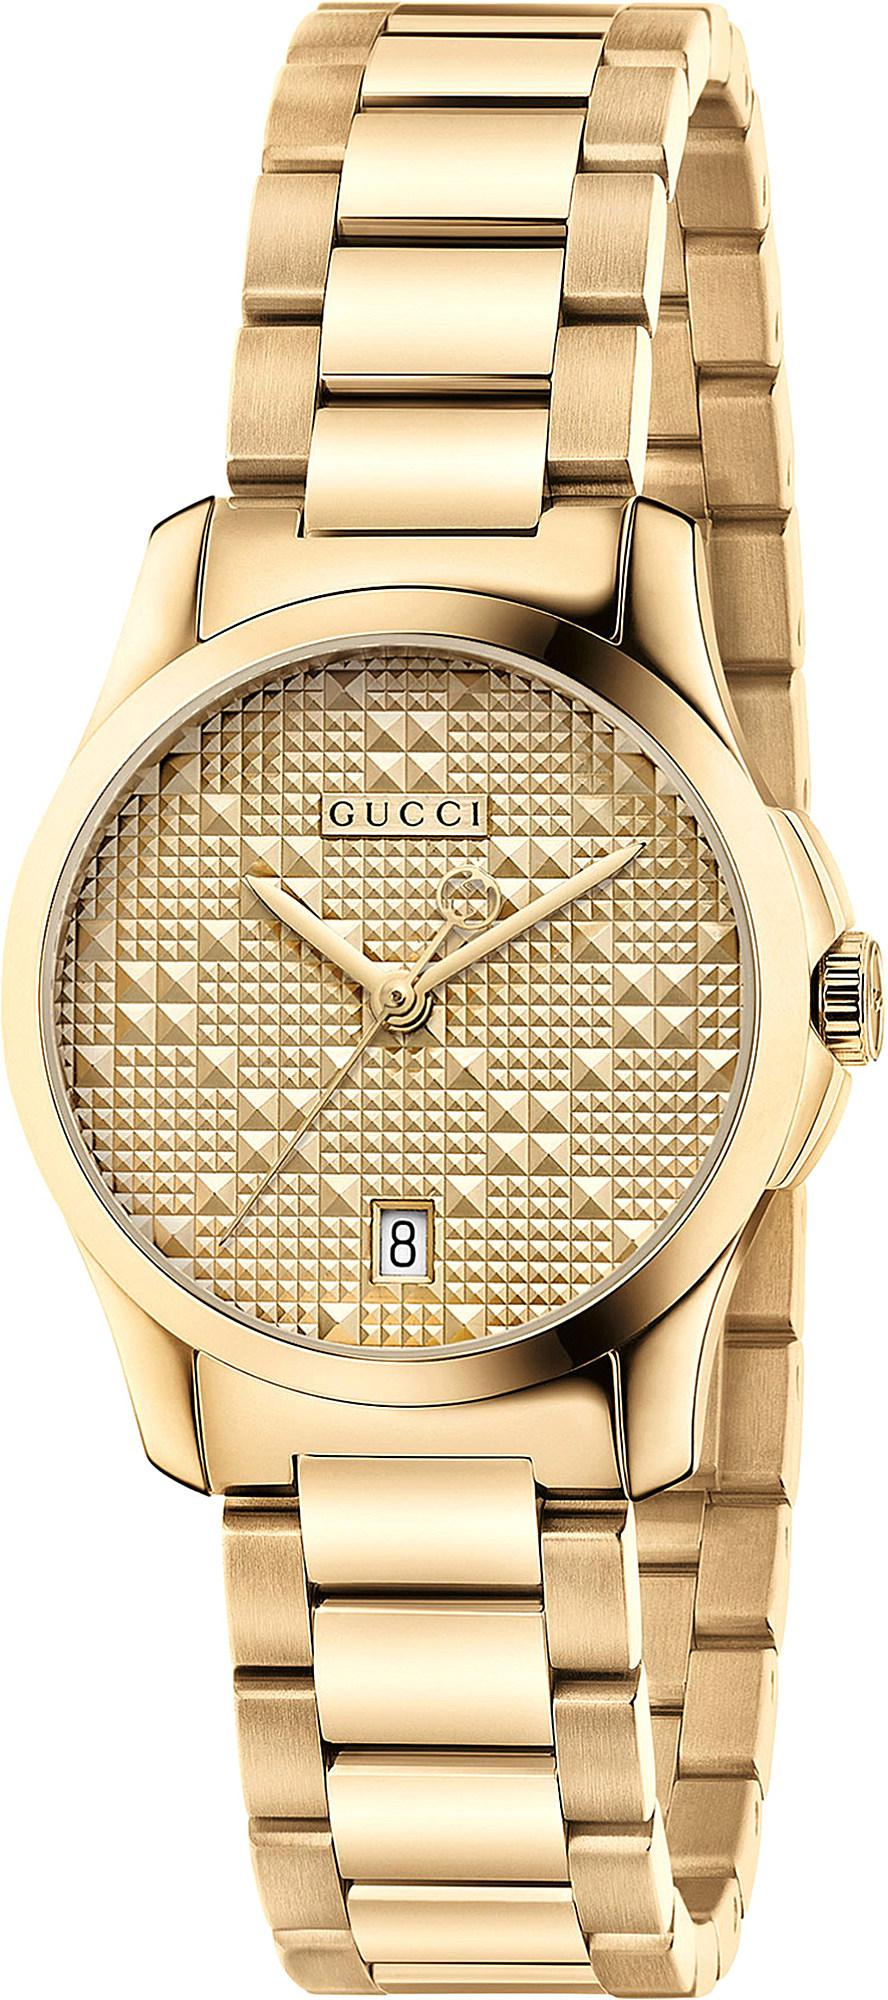 7a32fd909c1670 Gucci. Women s Metallic Ya126553 G Timeless Gold-plated Stainless Steel  Watch